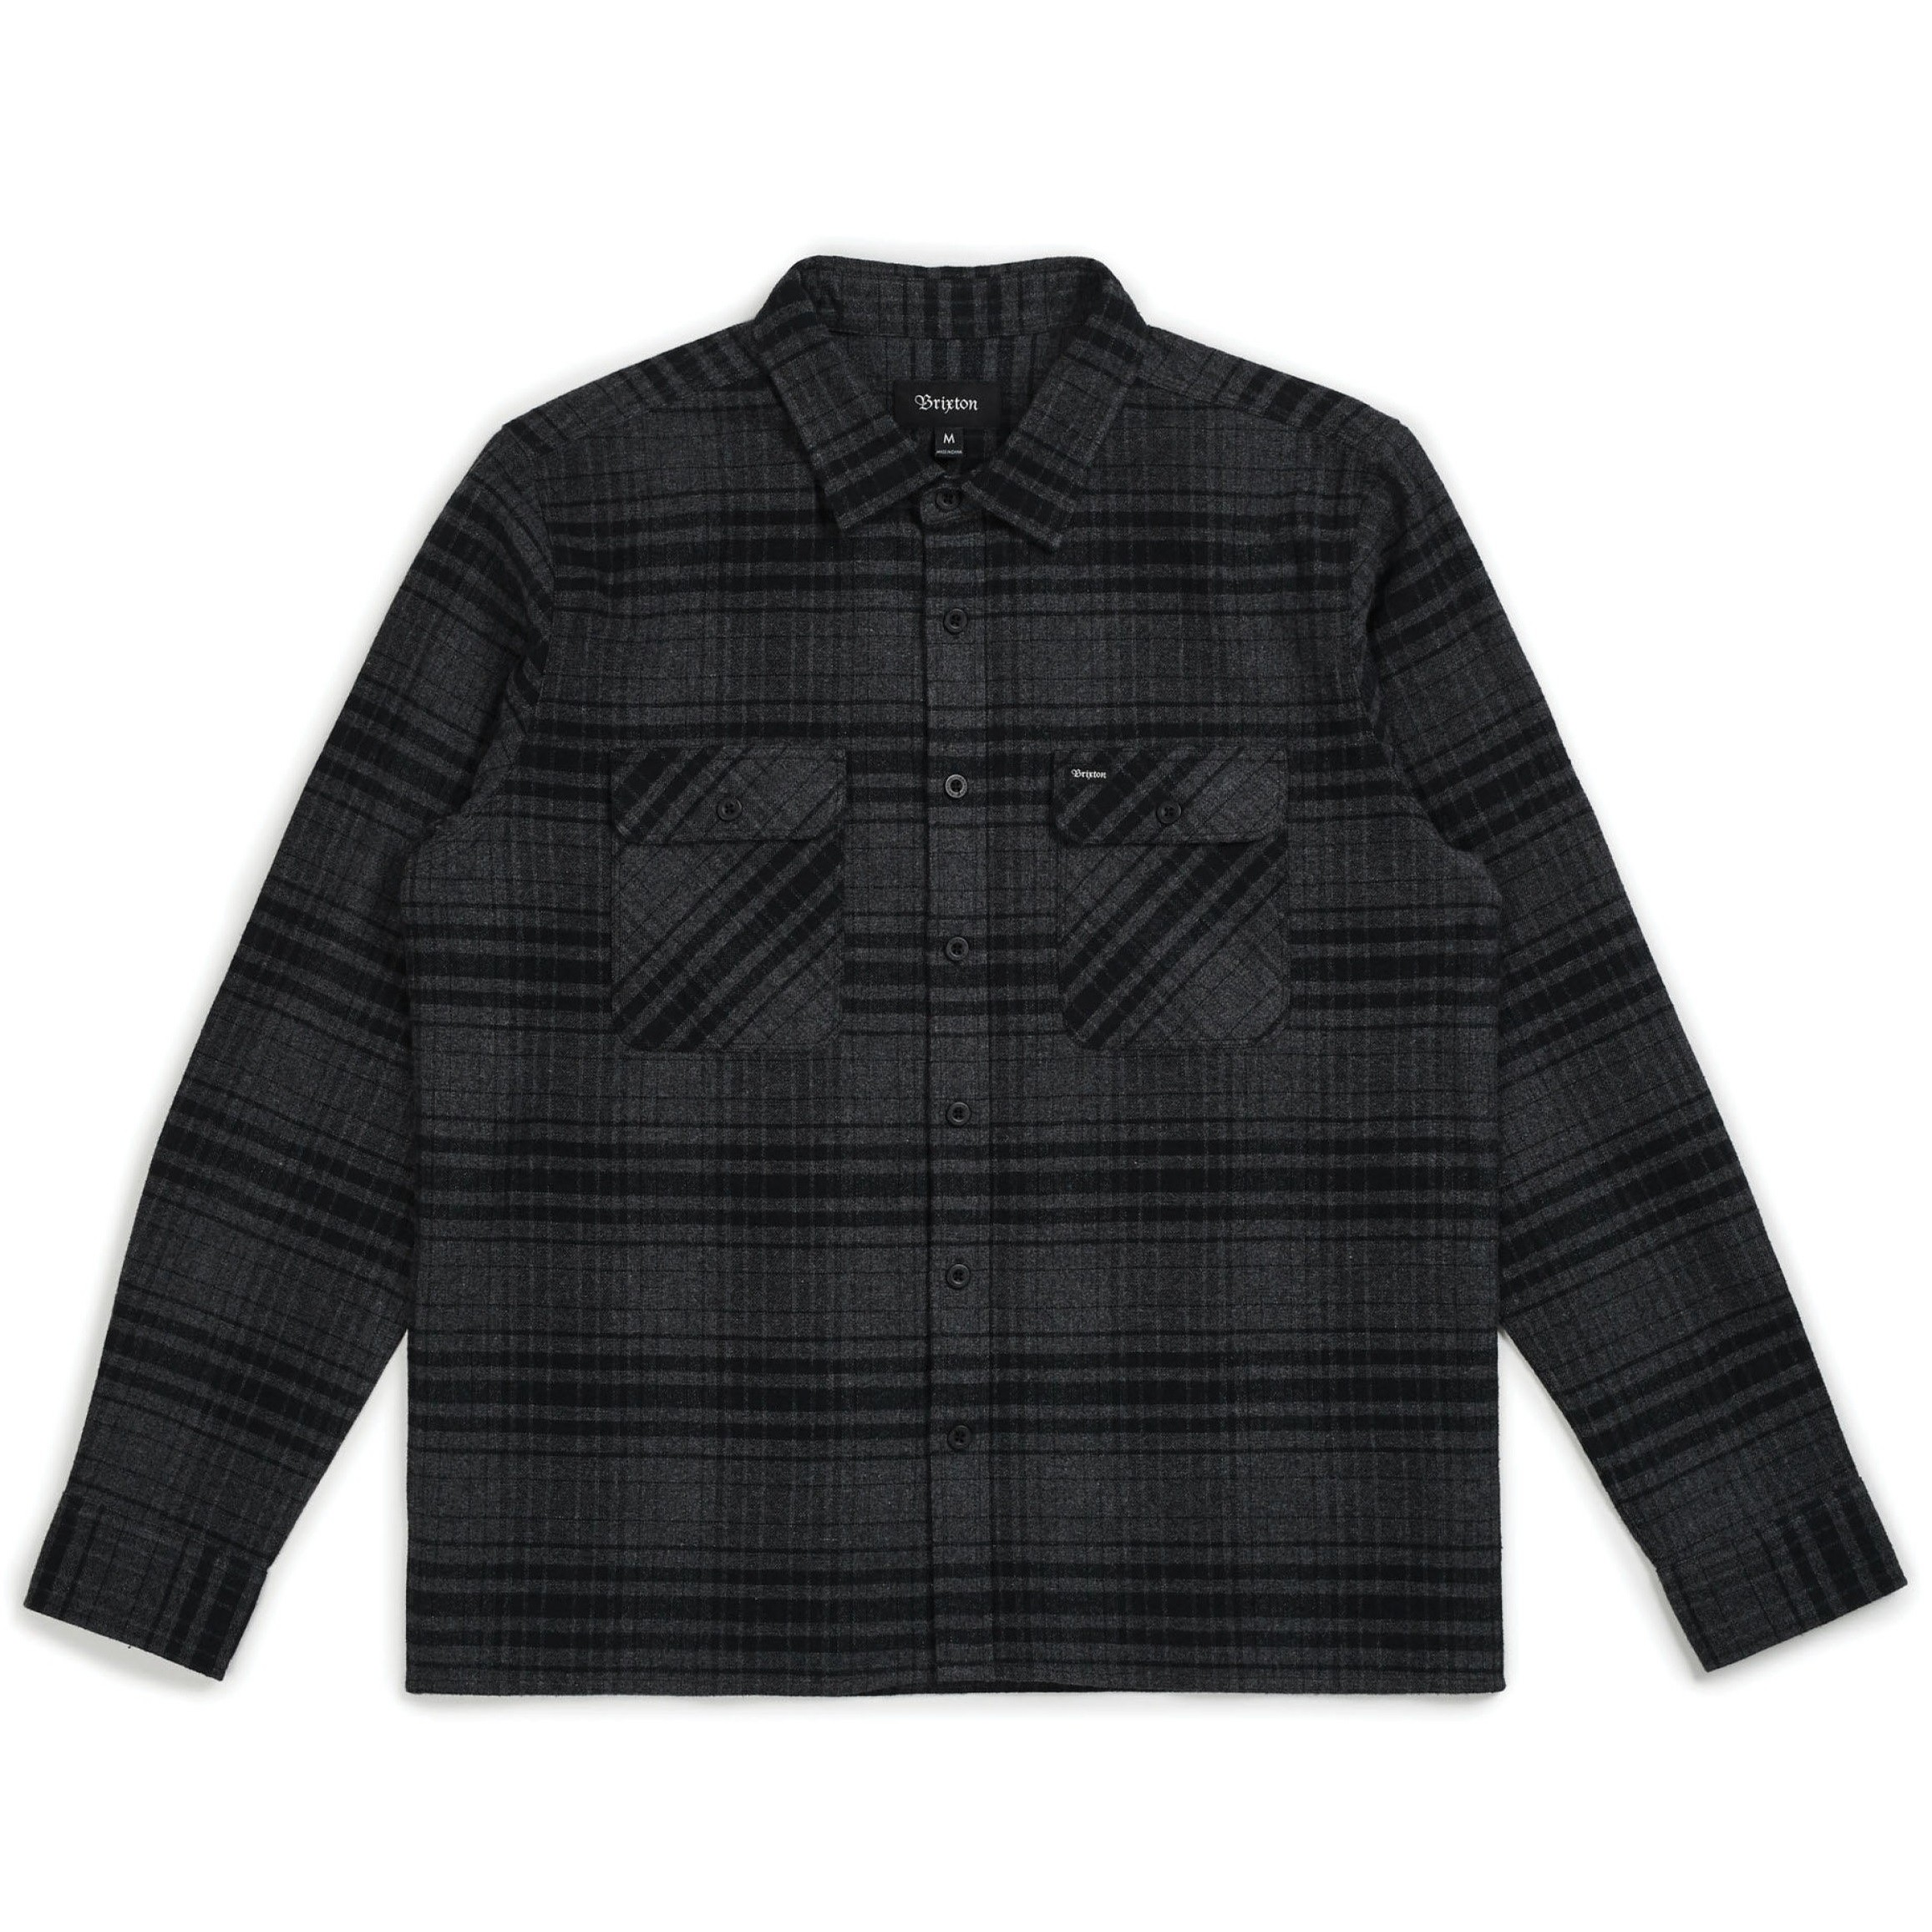 Archie L/S Flannel (Black/Heather Charcoal)